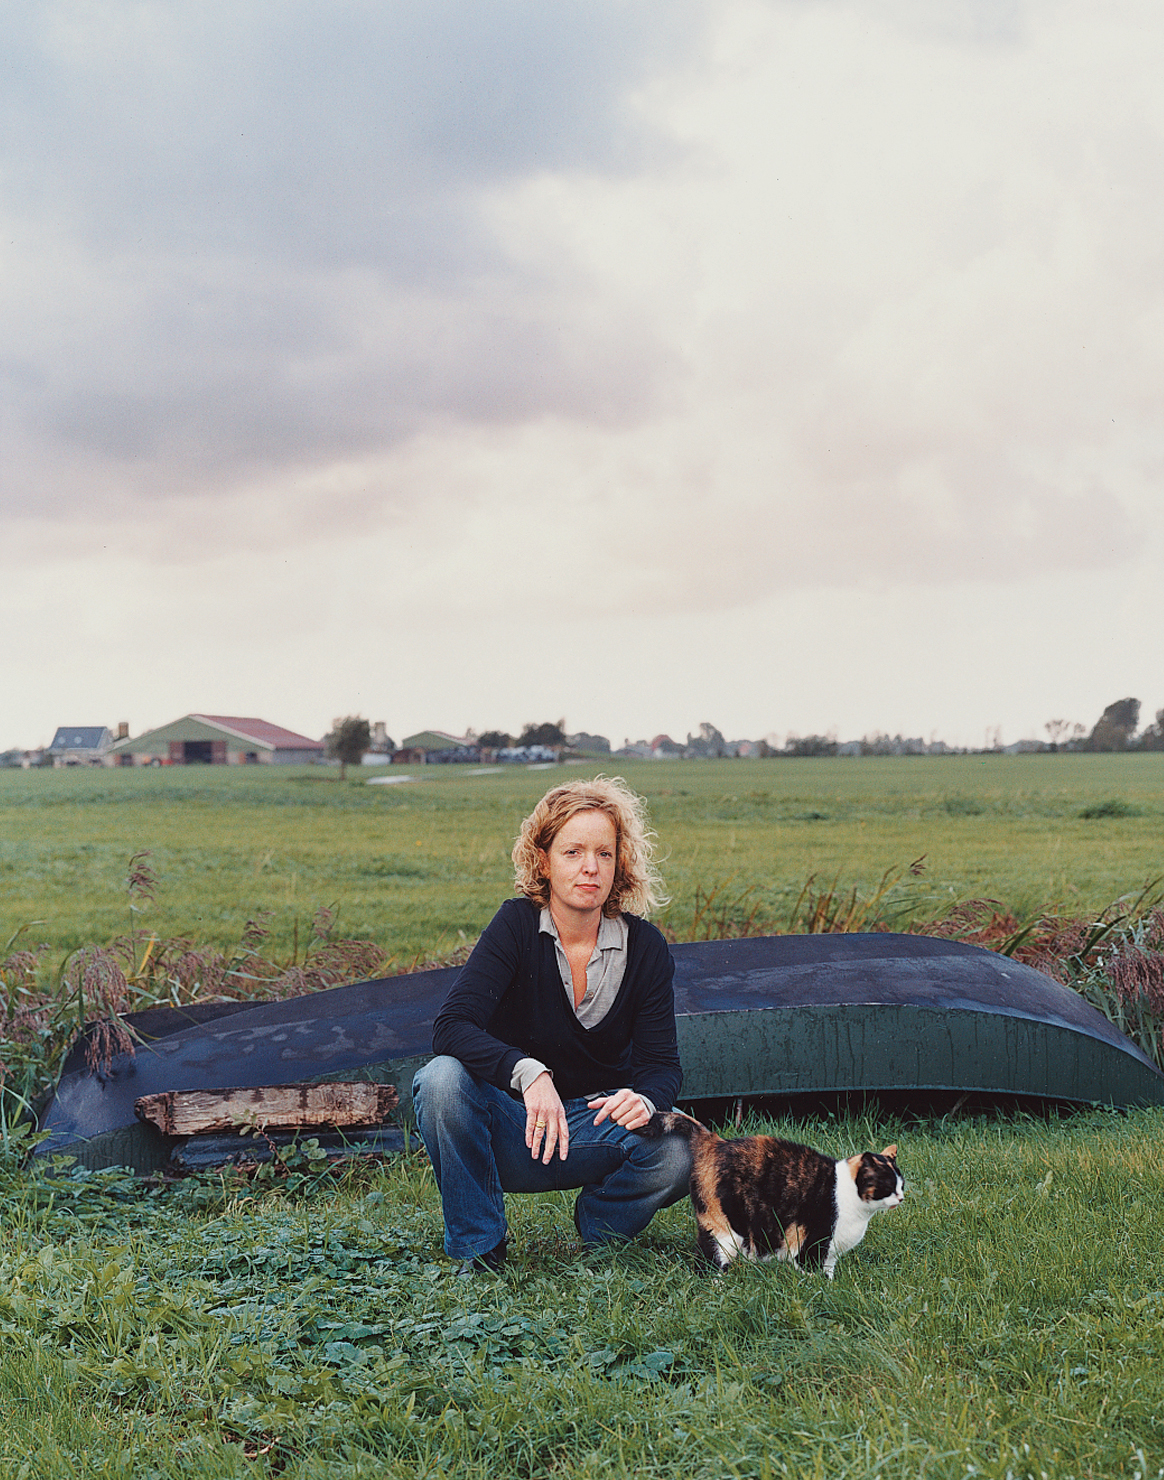 Claudy Jongstra kneels with a family cat in the yard behind her office and home, which she shares with her partner, Claudia Busson, and their two sons, Eabal and Jesk. Behind her is a small dinghy that the family uses to navigate the numerous irrigation c